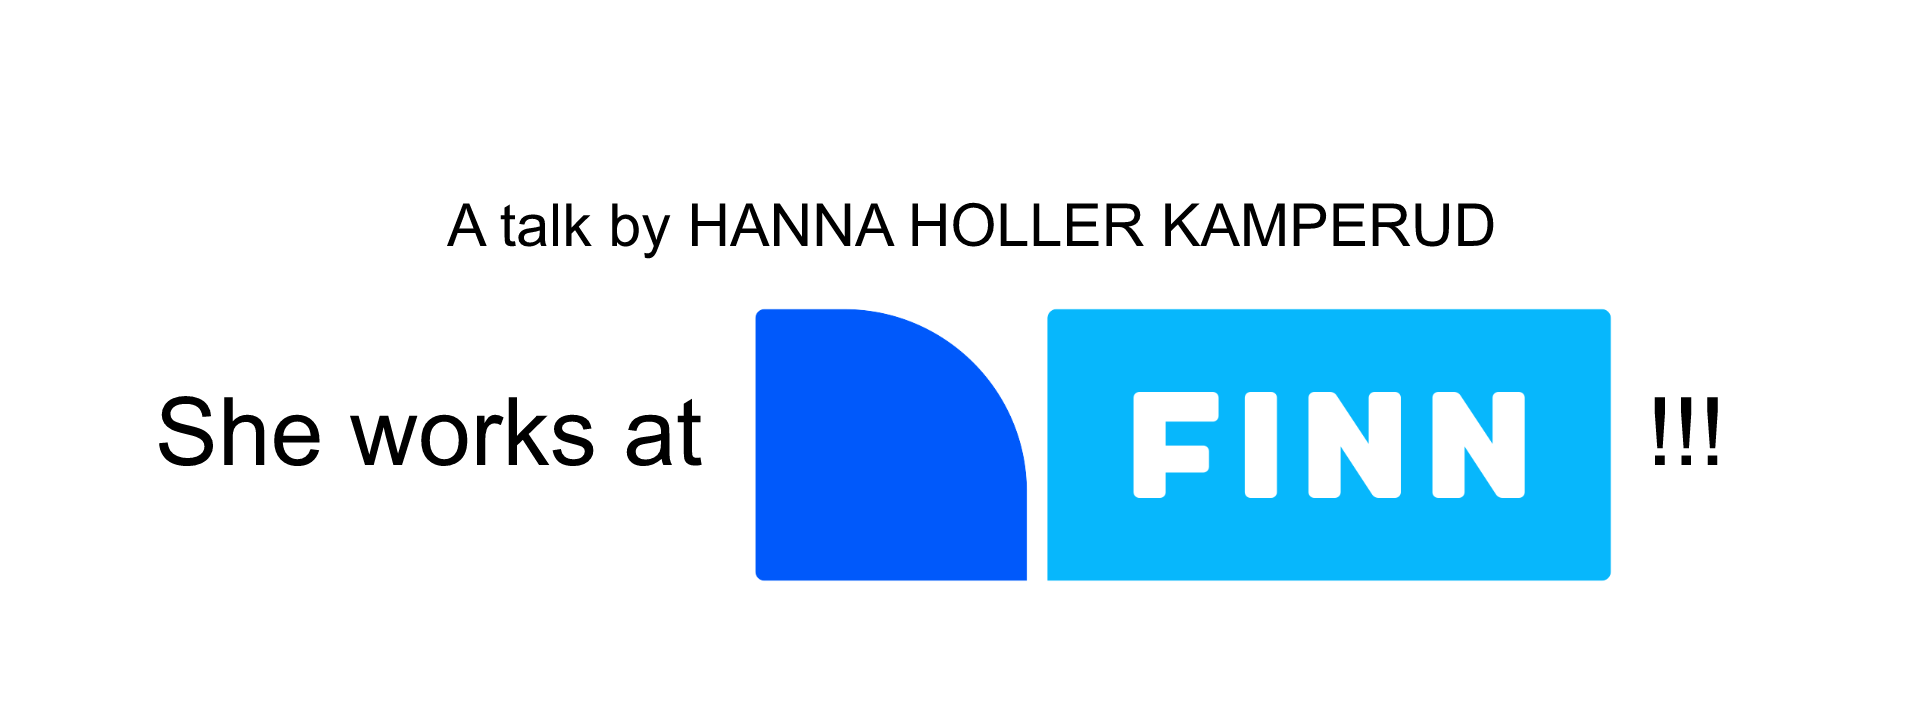 "Words written ""A talk by Hanna Holler Kamperud"" and underneath in larger letters it says ""she works at FINN!!!"""